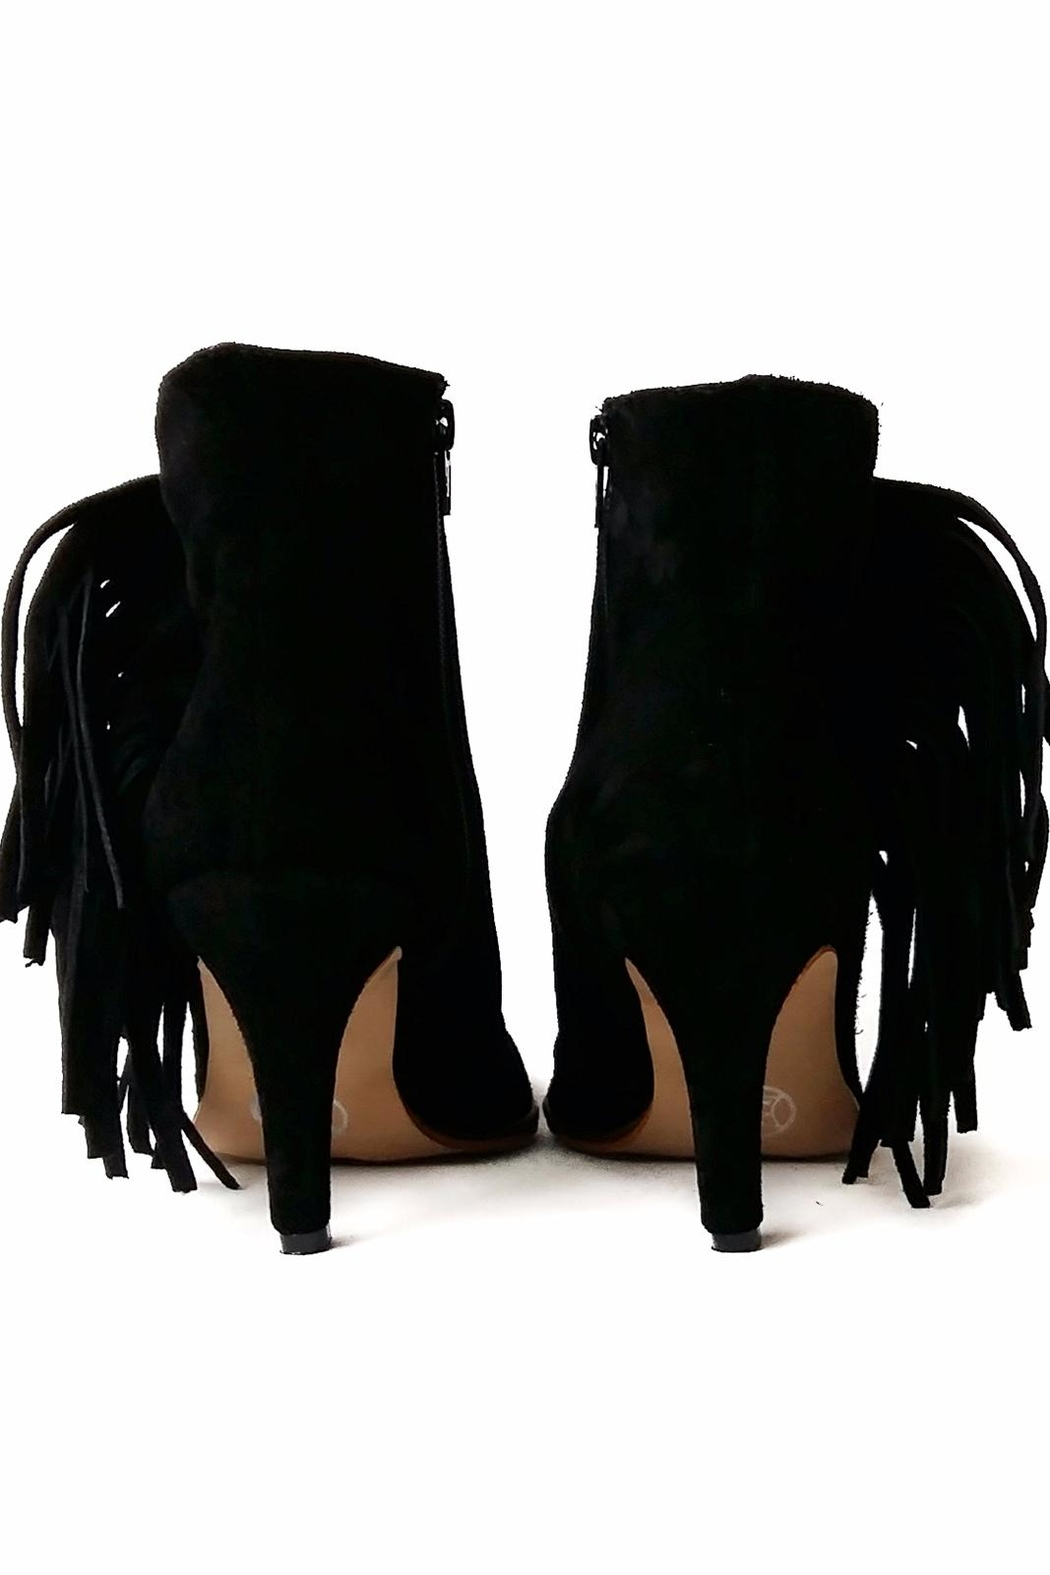 MIYE COLLAZZO Black Suede Bootie - Side Cropped Image